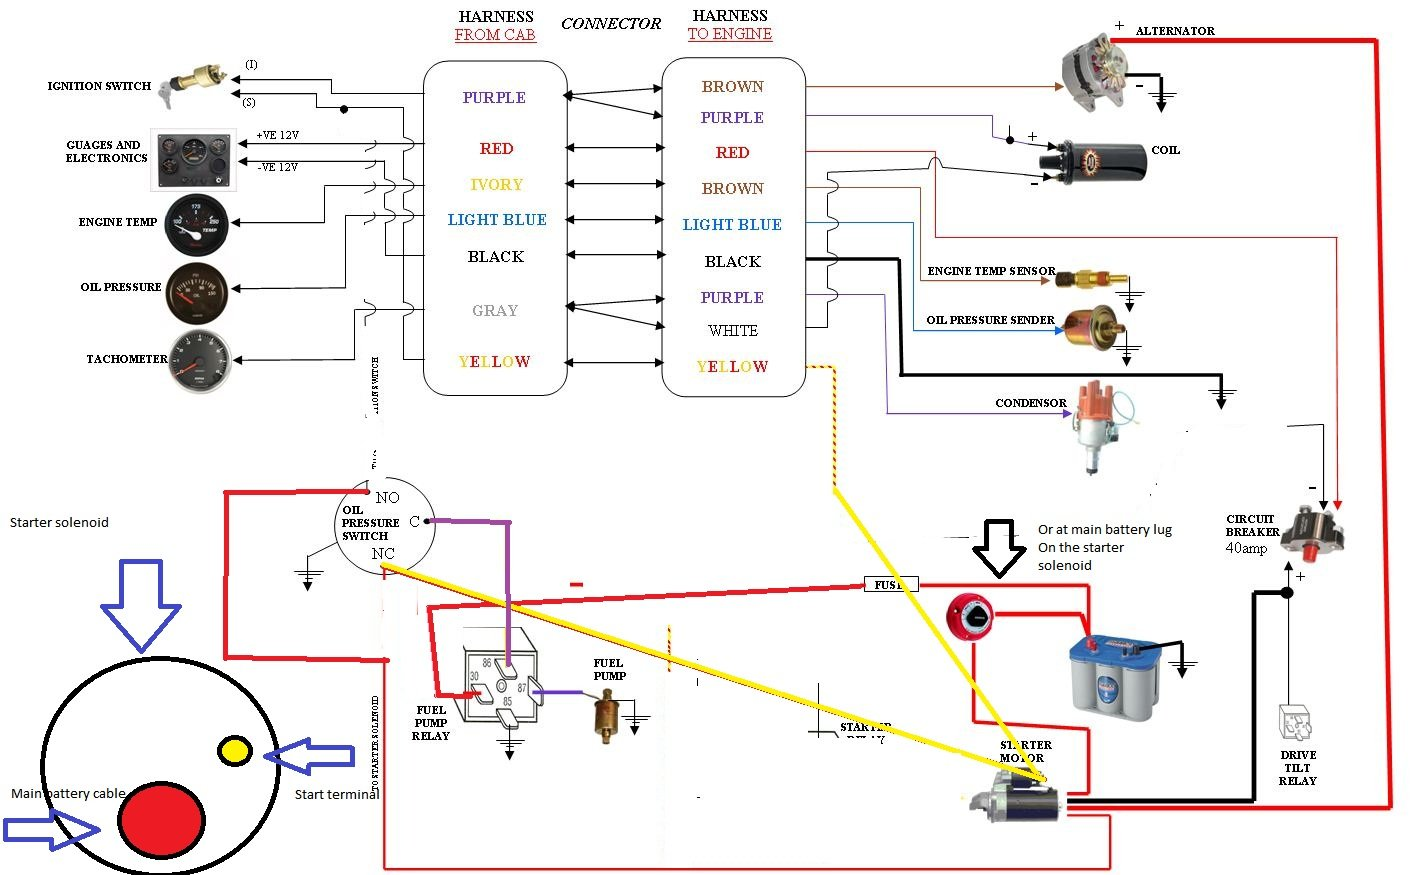 Volvo Aq131 Distributor Wiring Diagram - Wiring Diagram Text love-river -  love-river.albergoristorantecanzo.it | Volvo Marine Distributor Wiring |  | love-river.albergoristorantecanzo.it